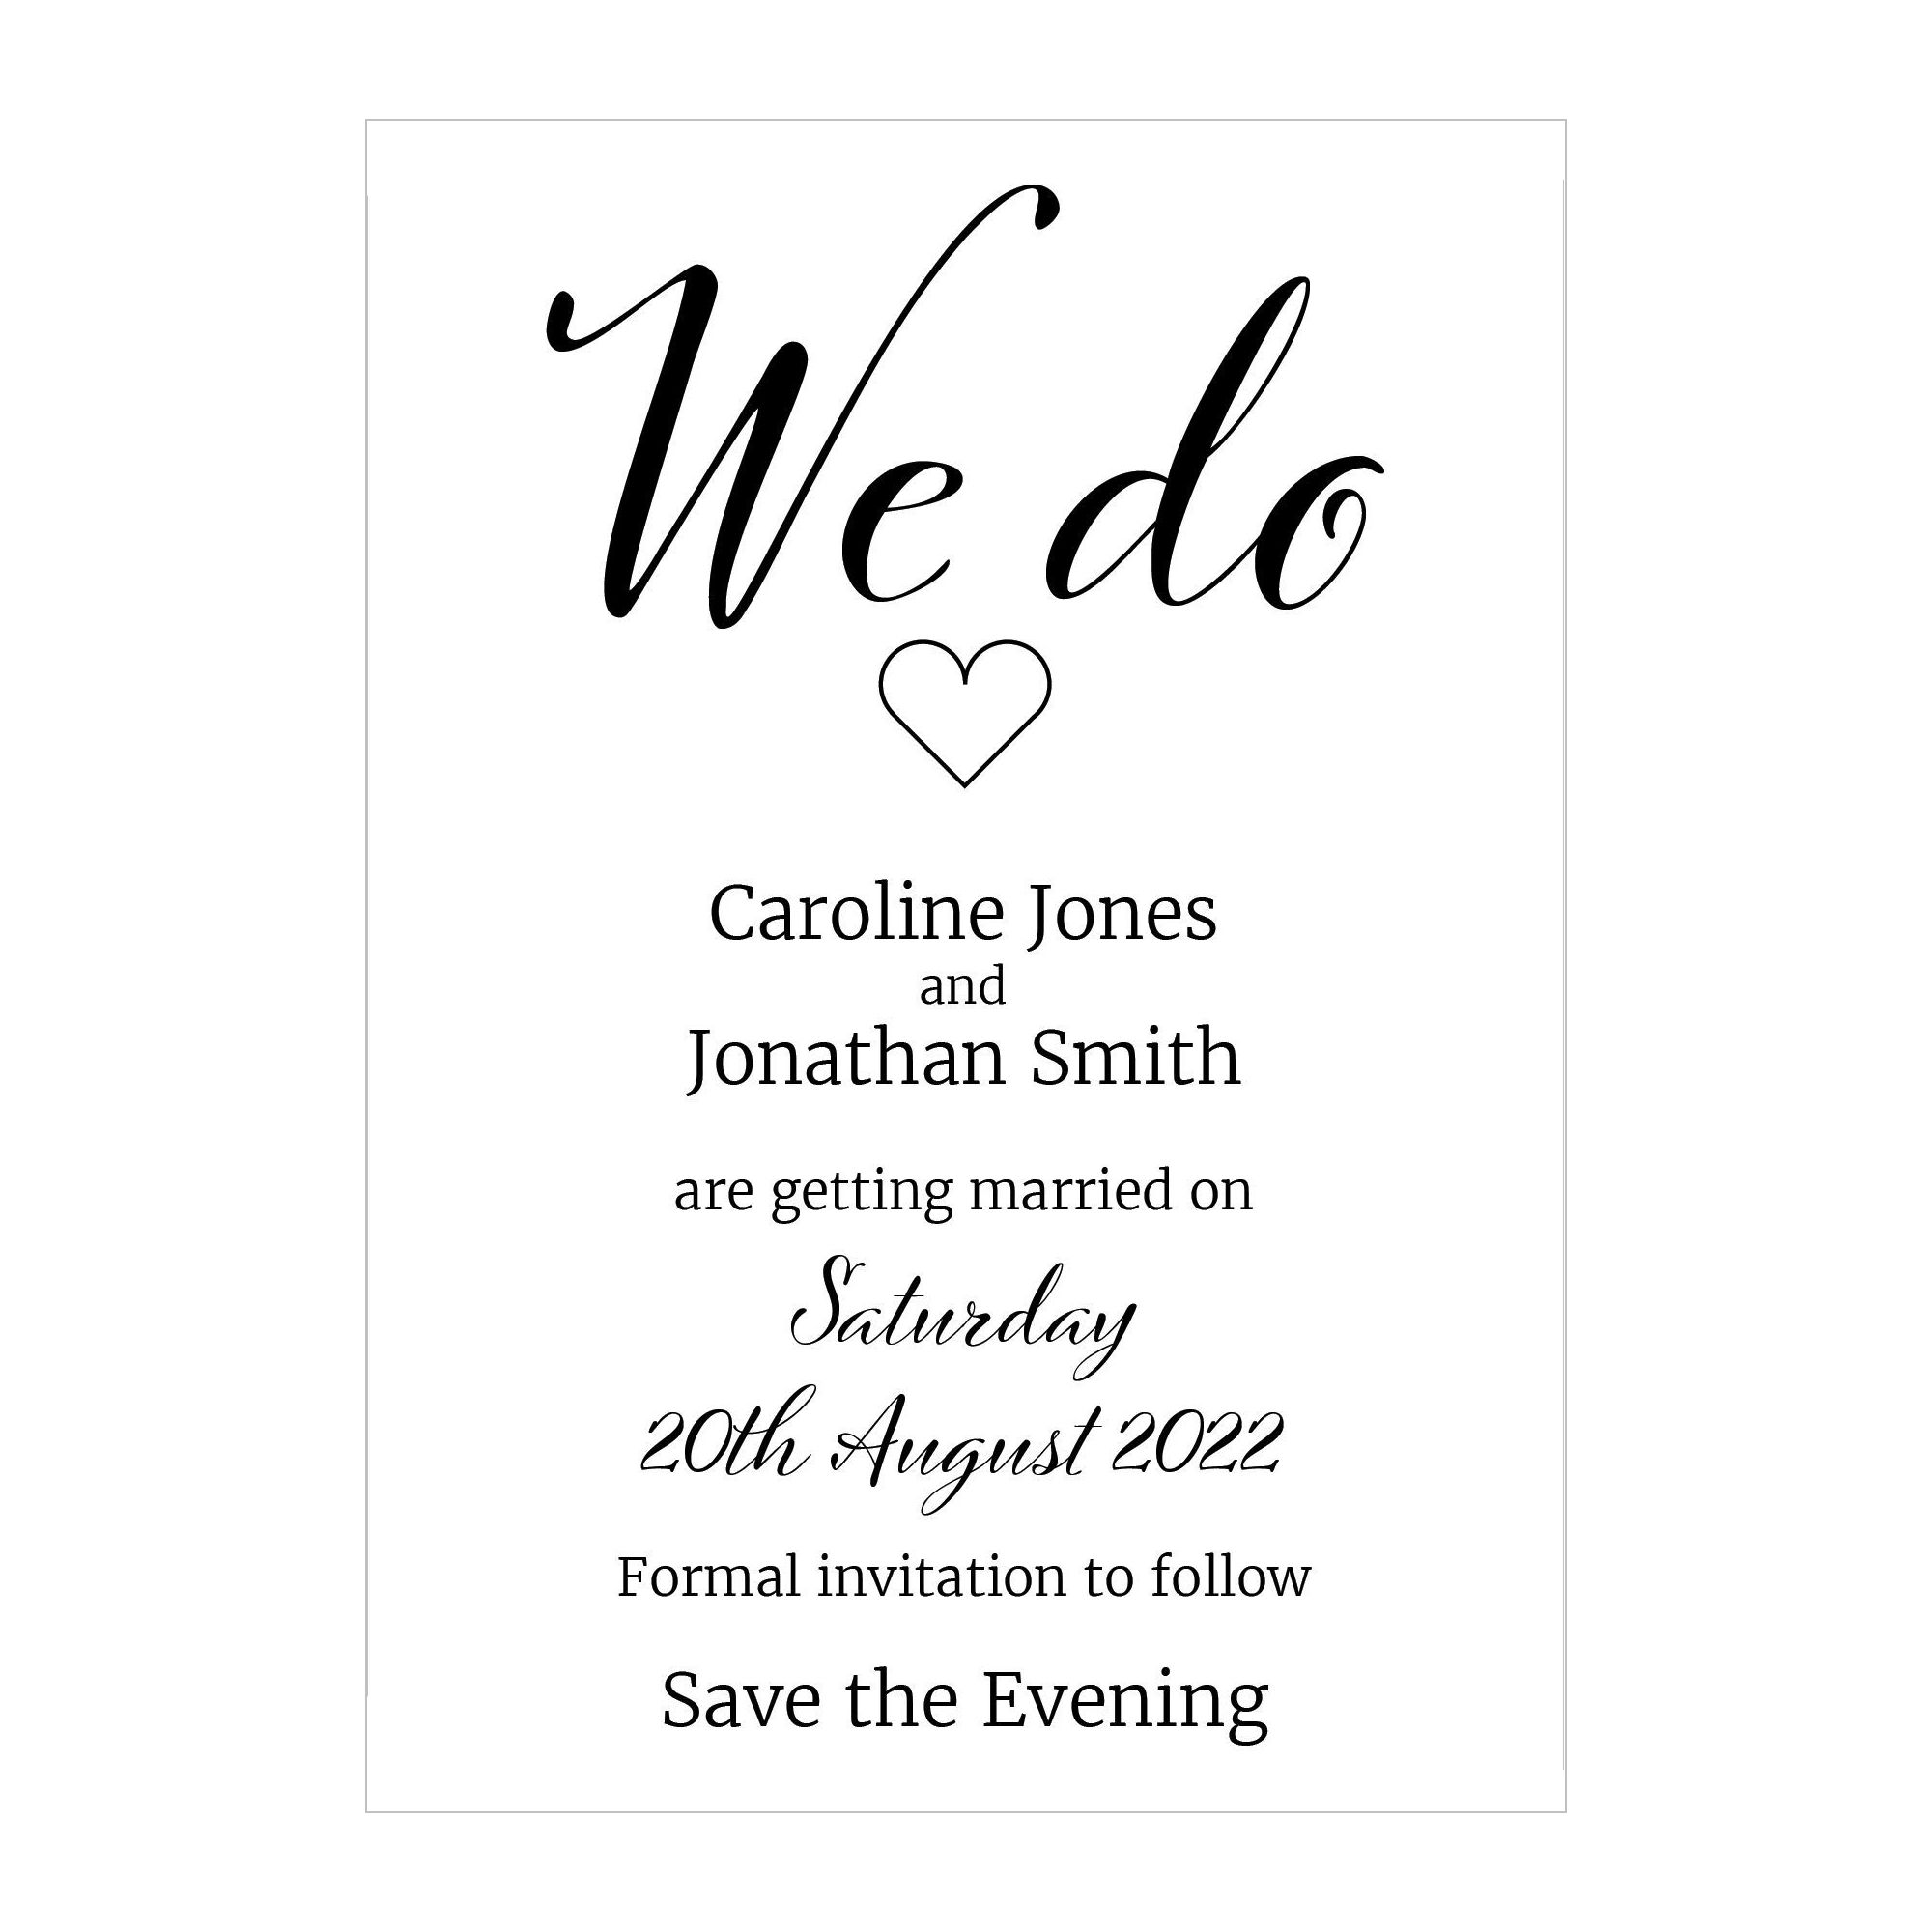 Textured White We Do Save the Evening Cards